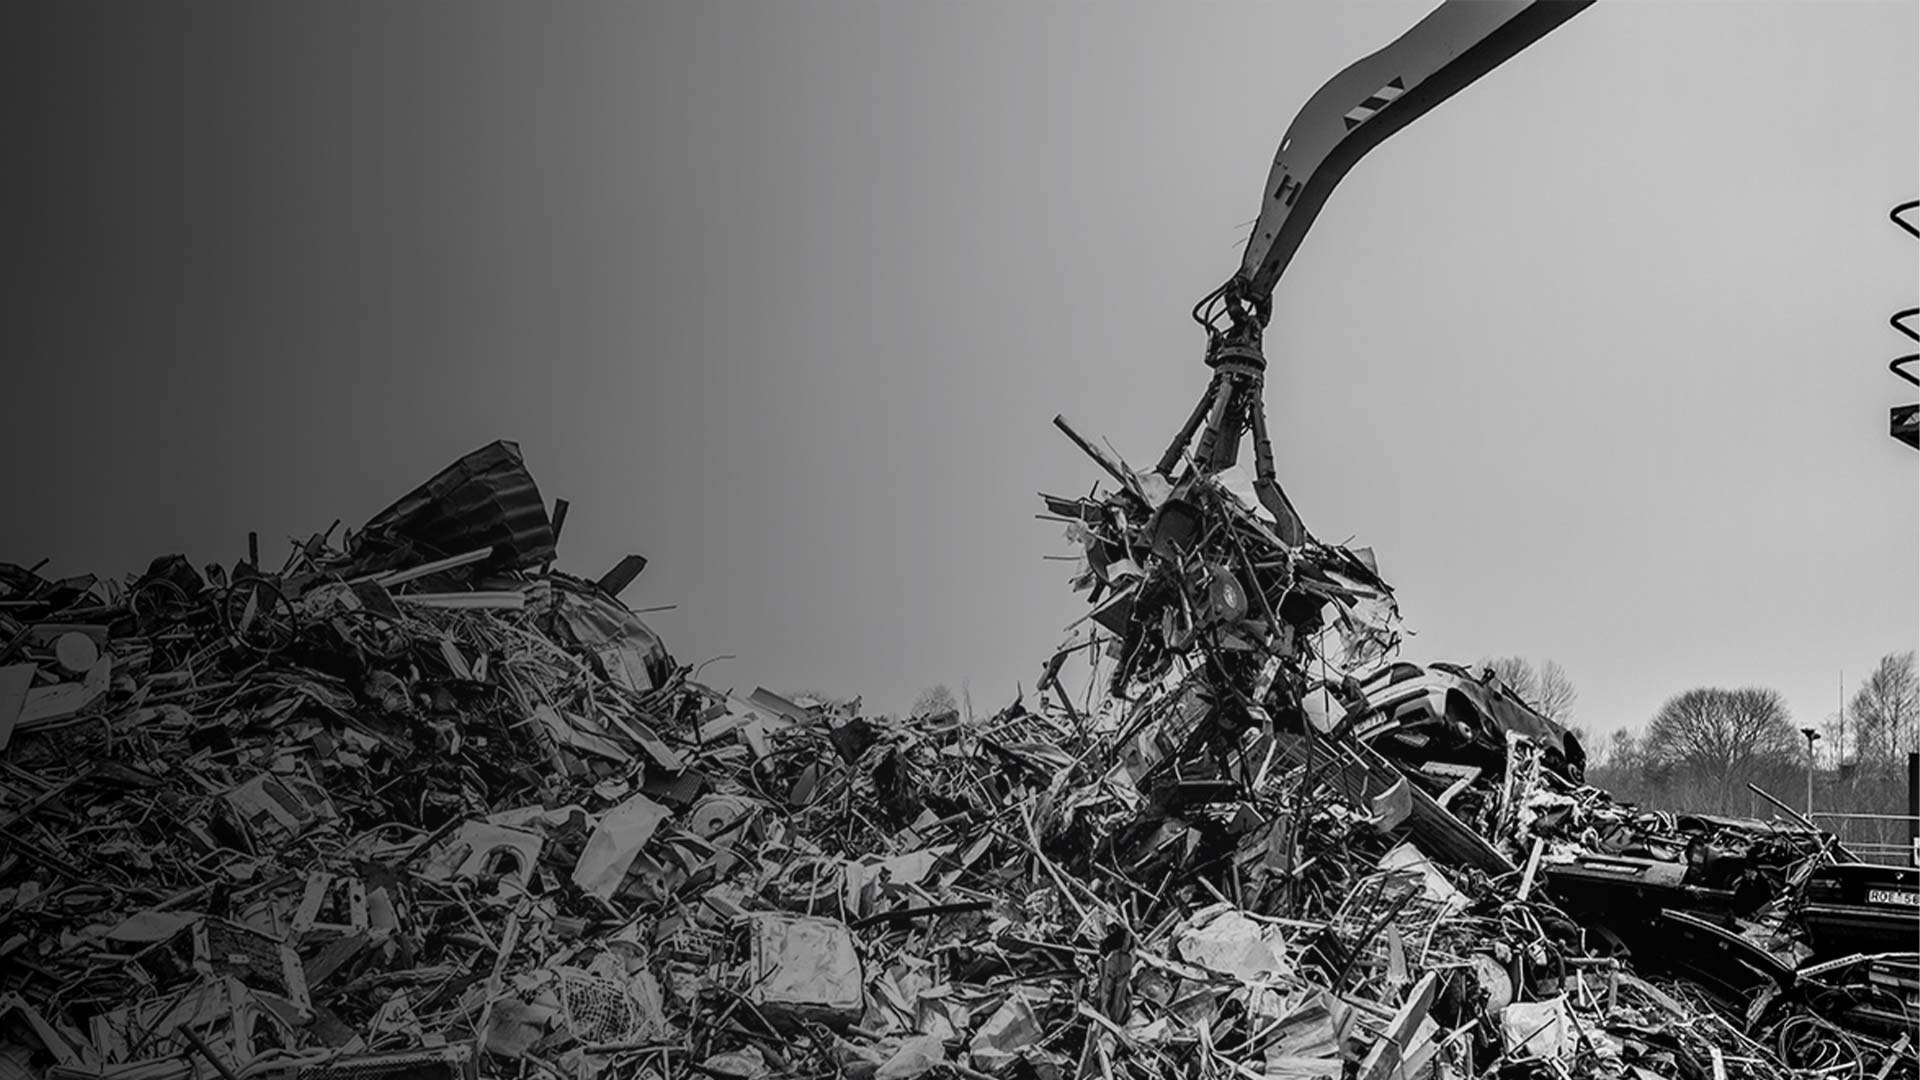 Hardox® In My Body demolition and recycling equipment